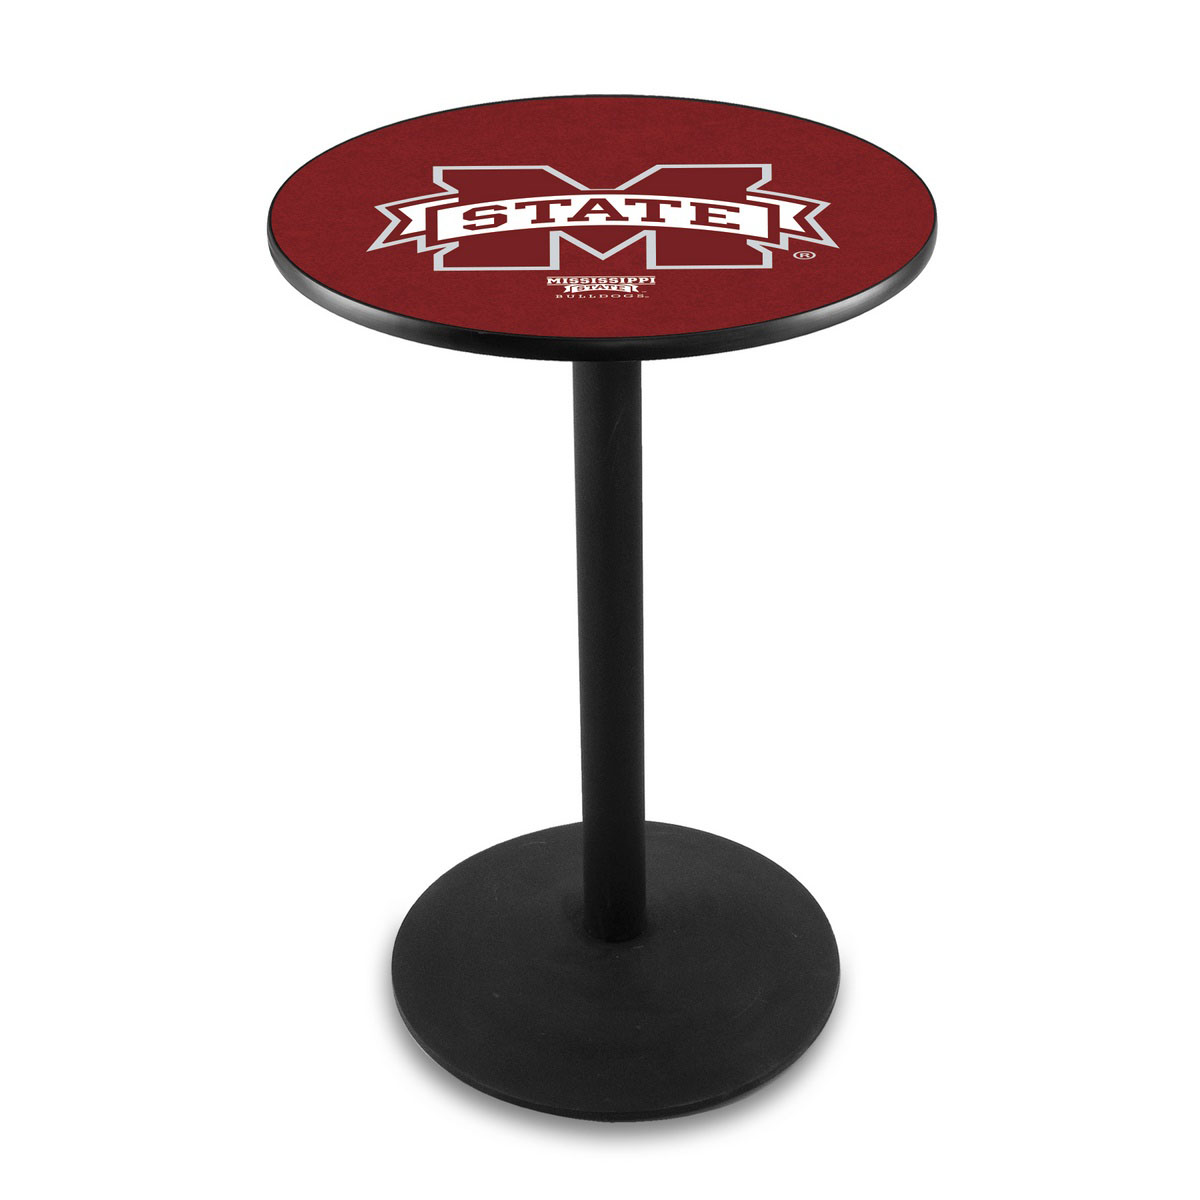 Ultimate Mississippi State University Logo Pub Bar Table Round Stand Product Photo